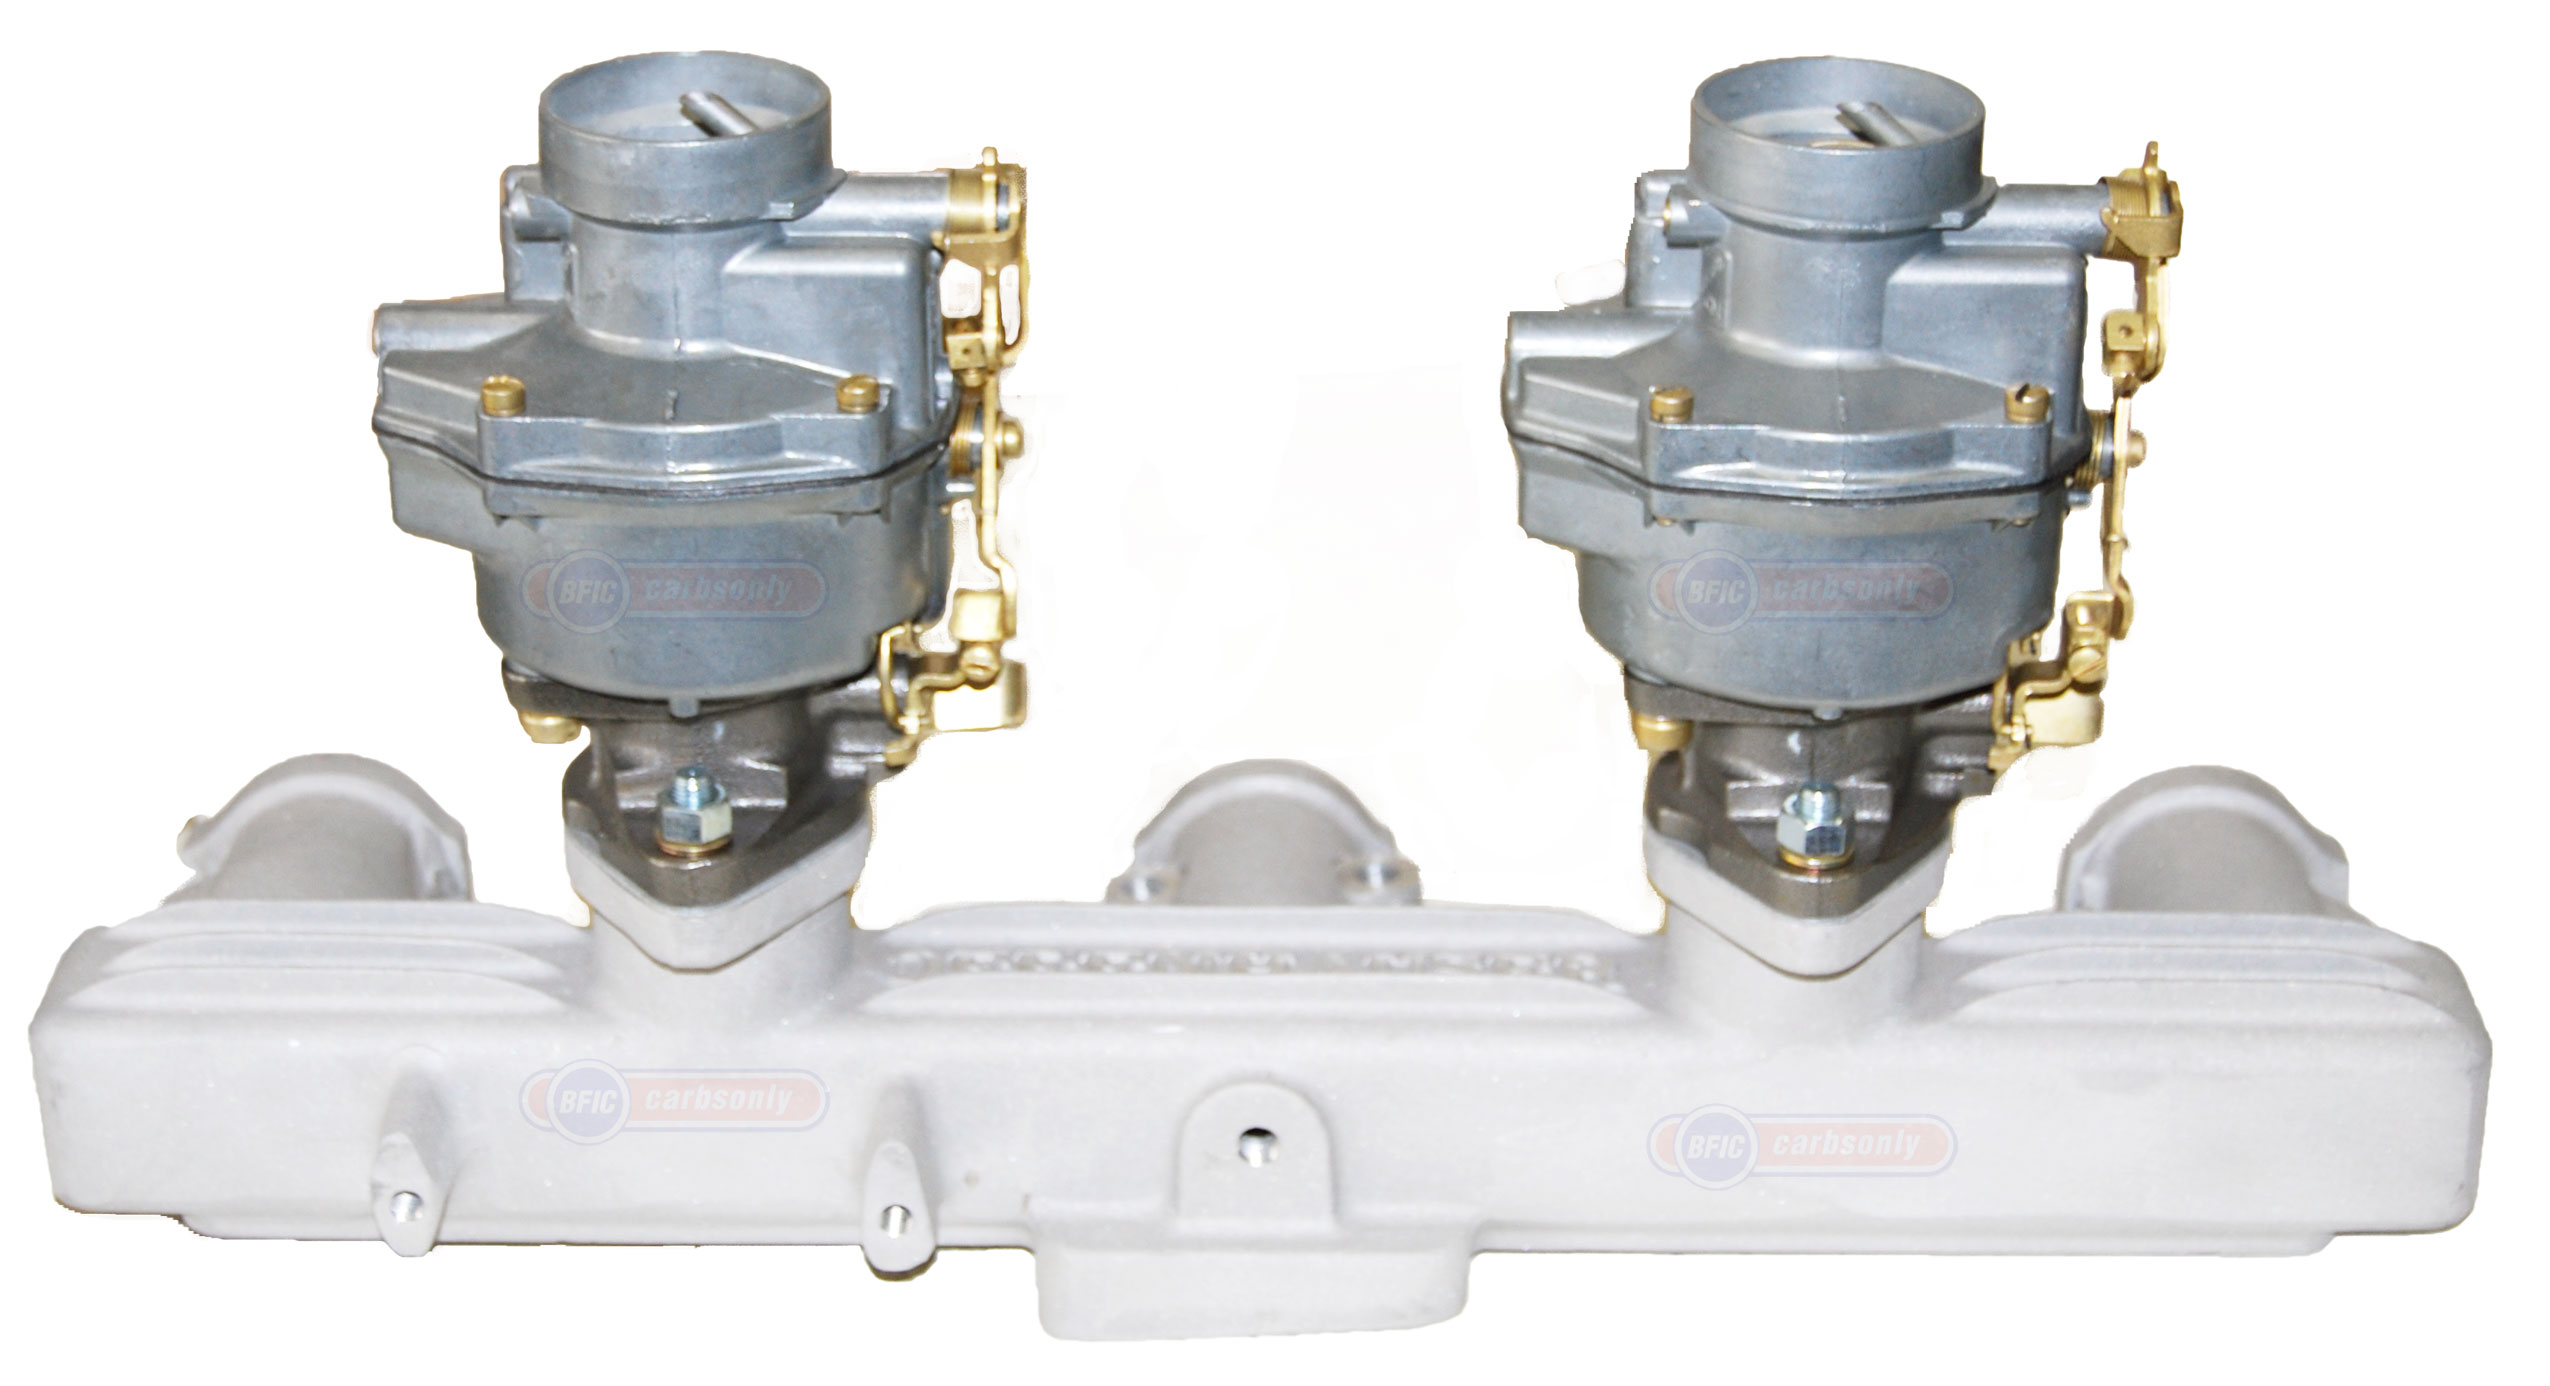 Dual Rochester carburetors 1bl with Offenhouser manifold